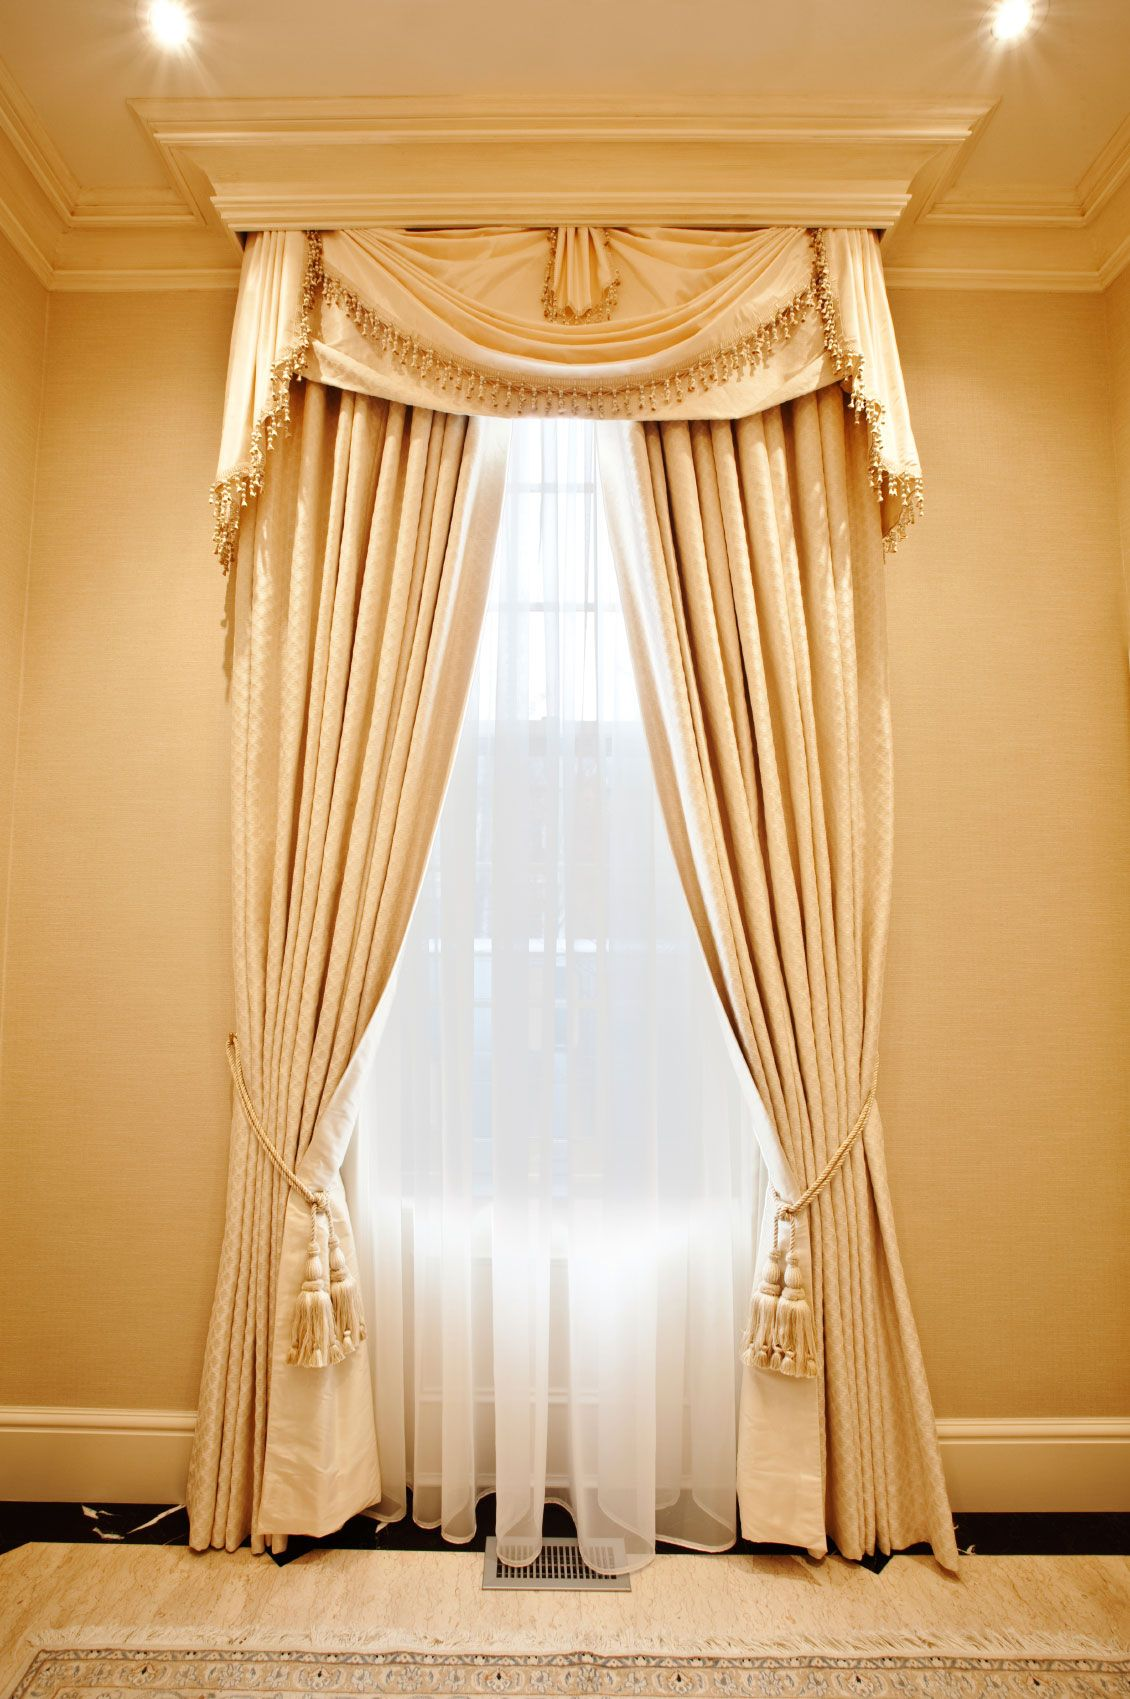 home decor ideas curtain ideas to enhance the beauty. Black Bedroom Furniture Sets. Home Design Ideas